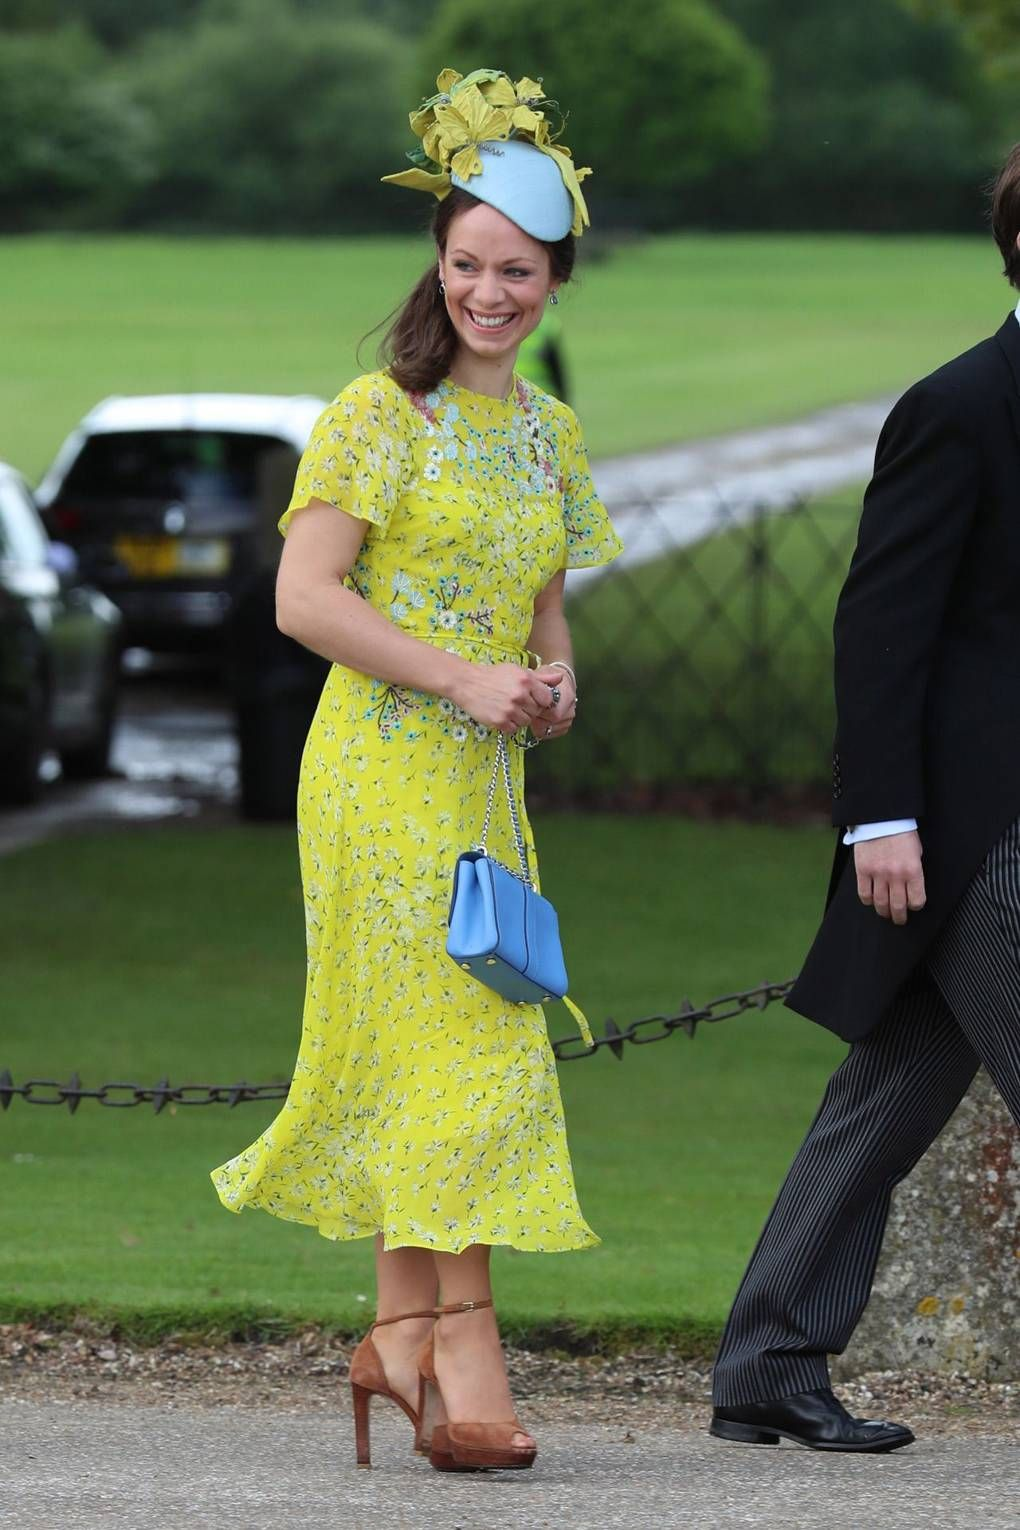 Wedding attendee dresses  Pippa Middletonus Wedding What The Guests Wore  looks  Pinterest